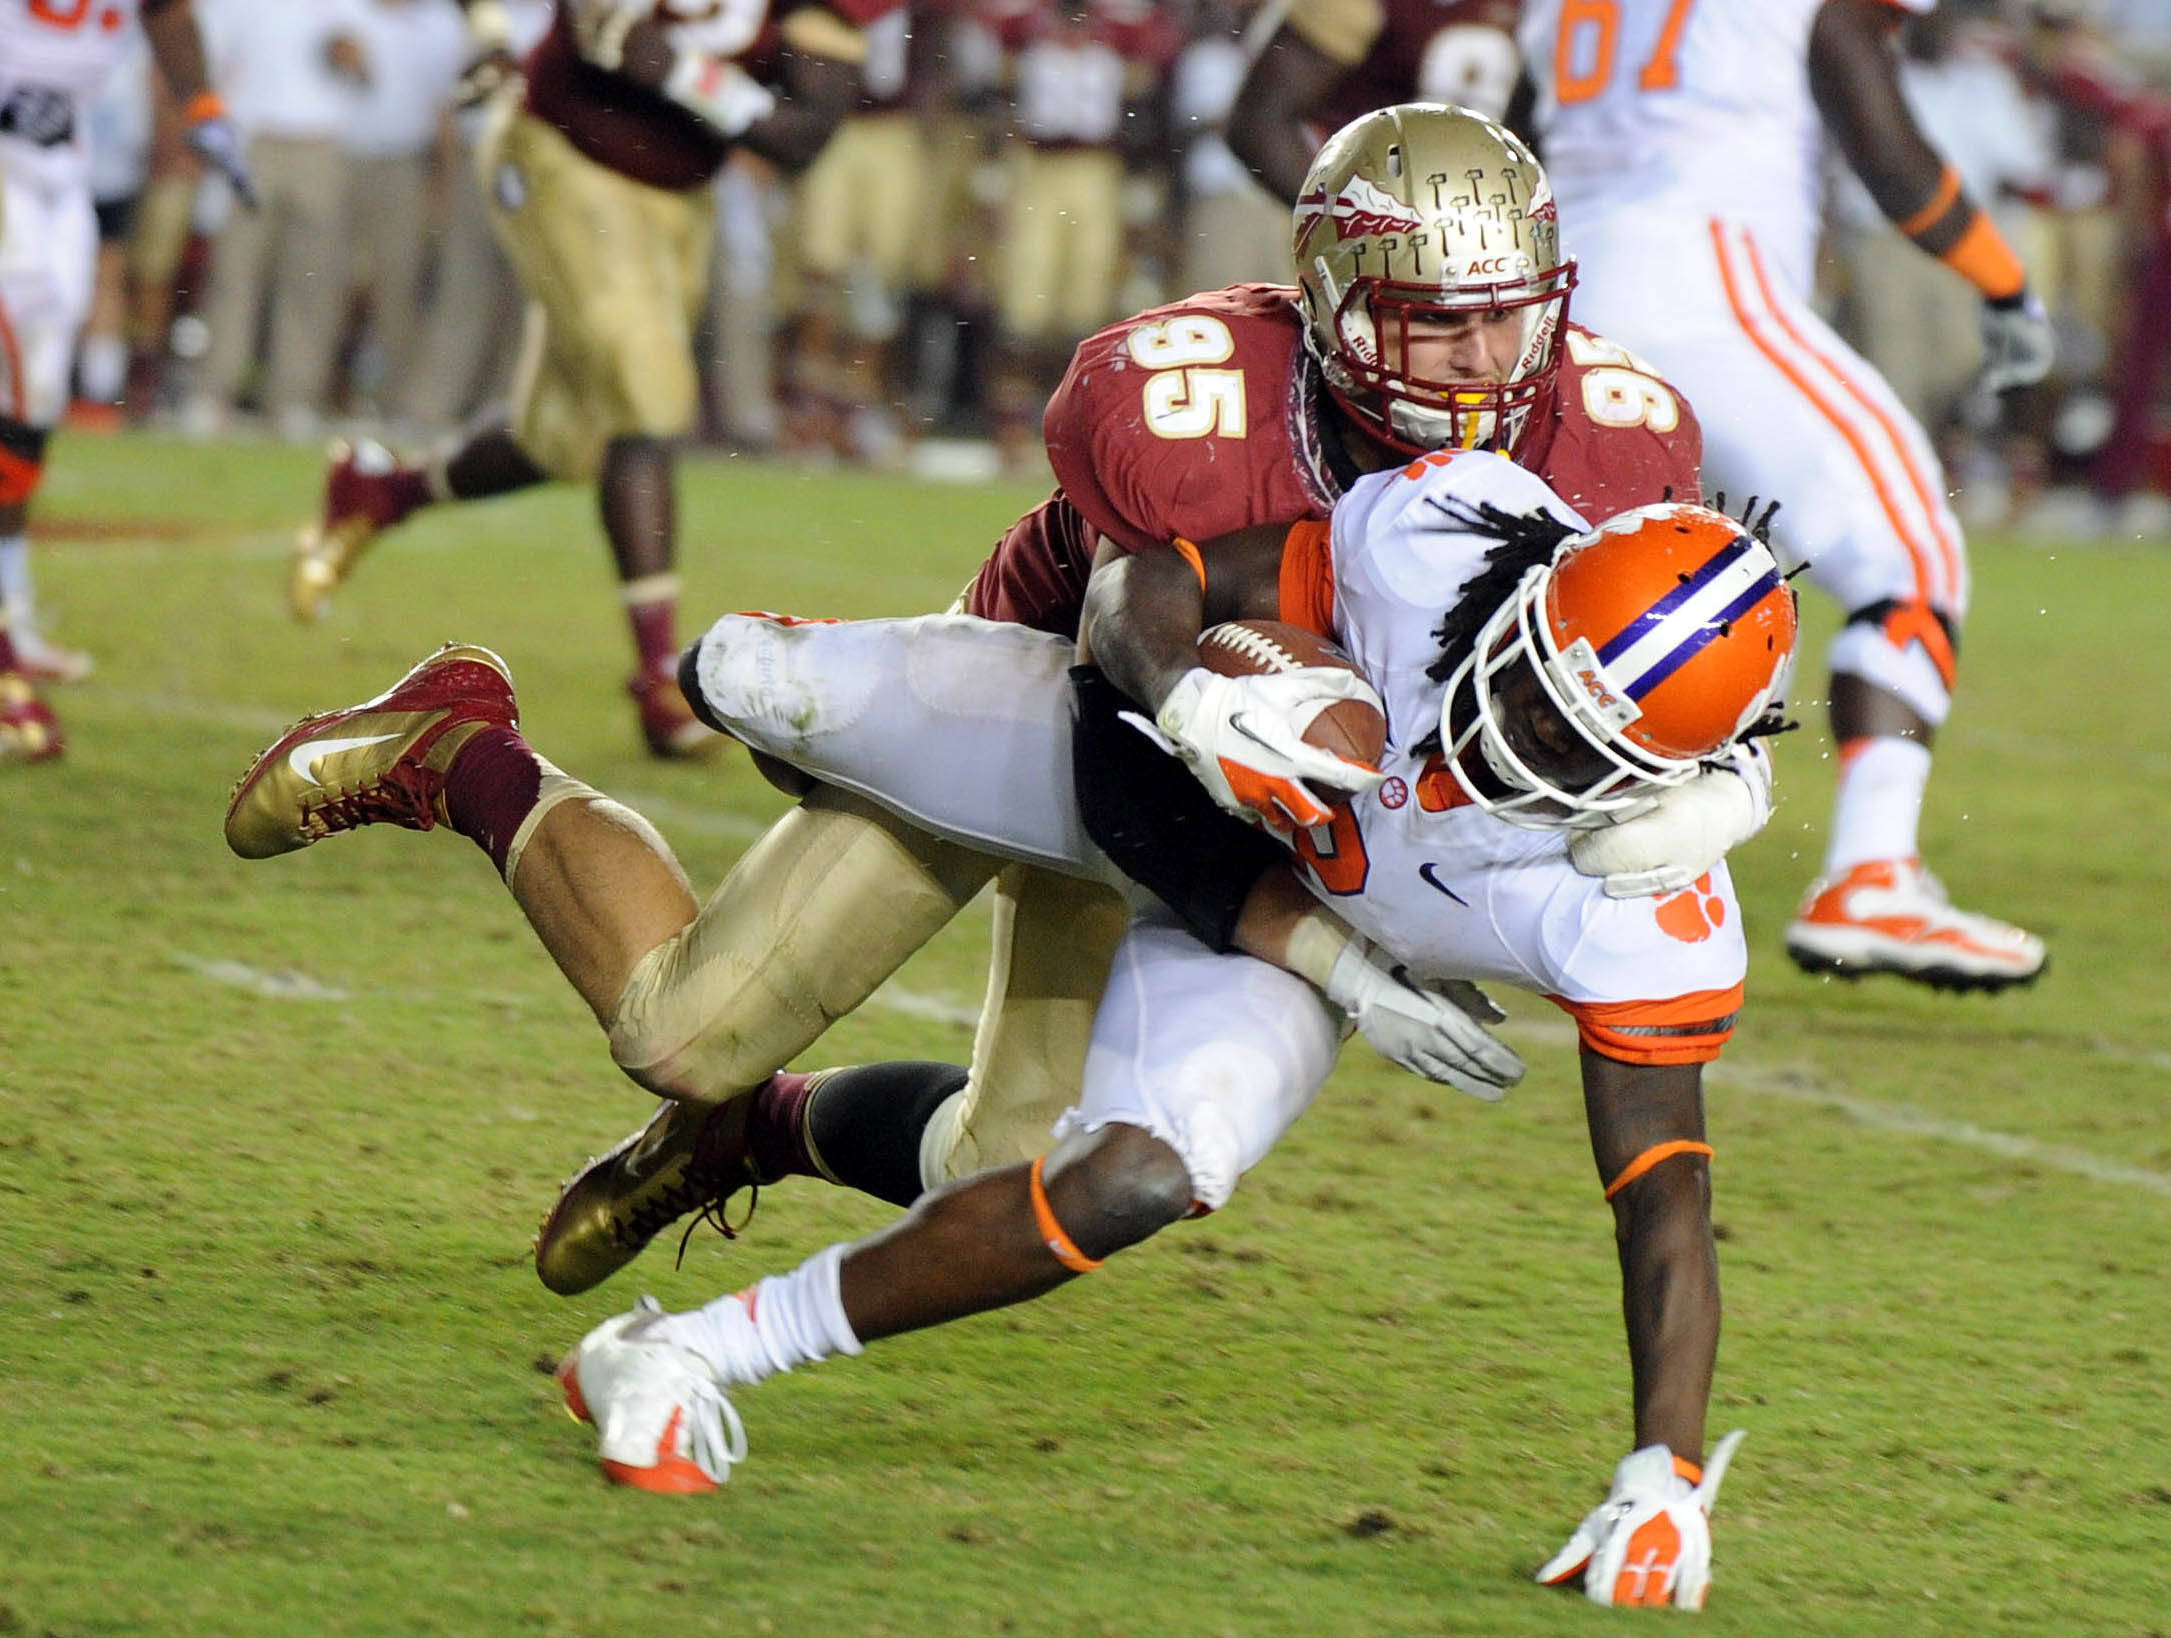 Sept 22, 2012;  Tallahassee, Florida, USA; Florida State Seminoles defensive end Bjoern Werner (95) tackles Clemson Tigers wide receiver Sammy Watkins (2) during the second half of the game at Doak Campbell Stadium. Mandatory Credit: Melina Vastola-USA TODAY Sports